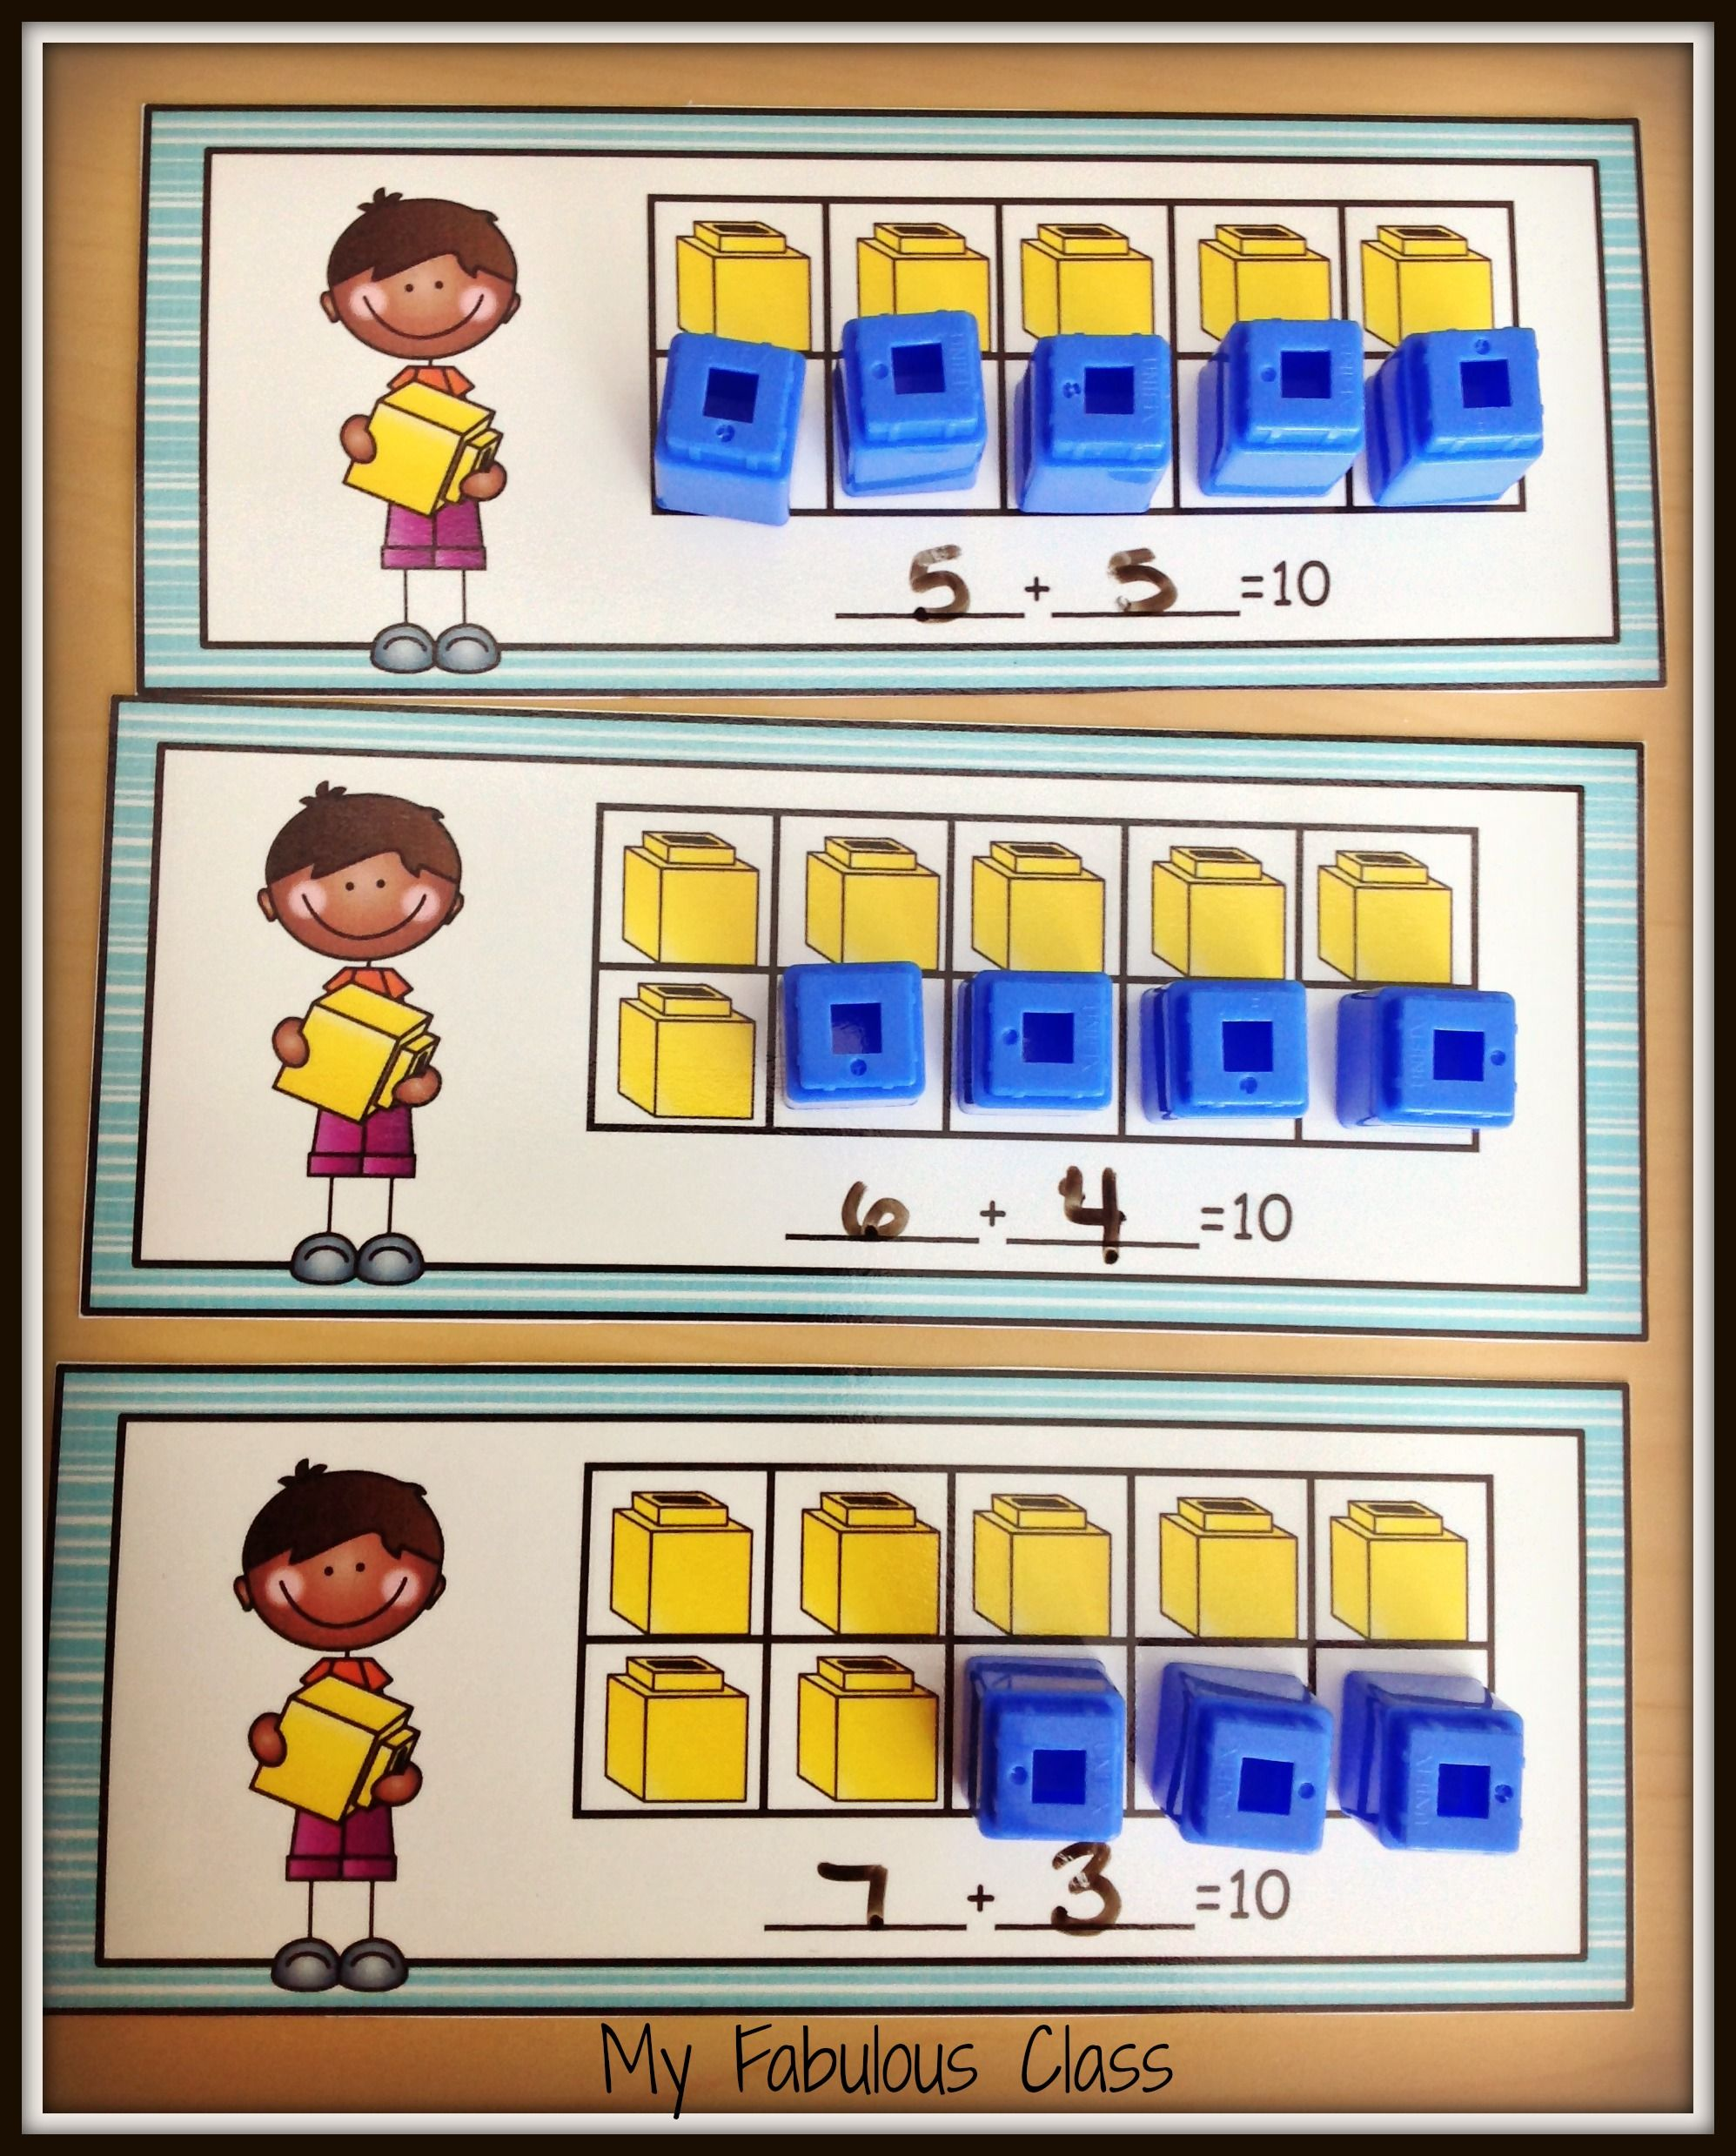 pin by my fabulous class on learning from kinder cubes math math classroom preschool math. Black Bedroom Furniture Sets. Home Design Ideas